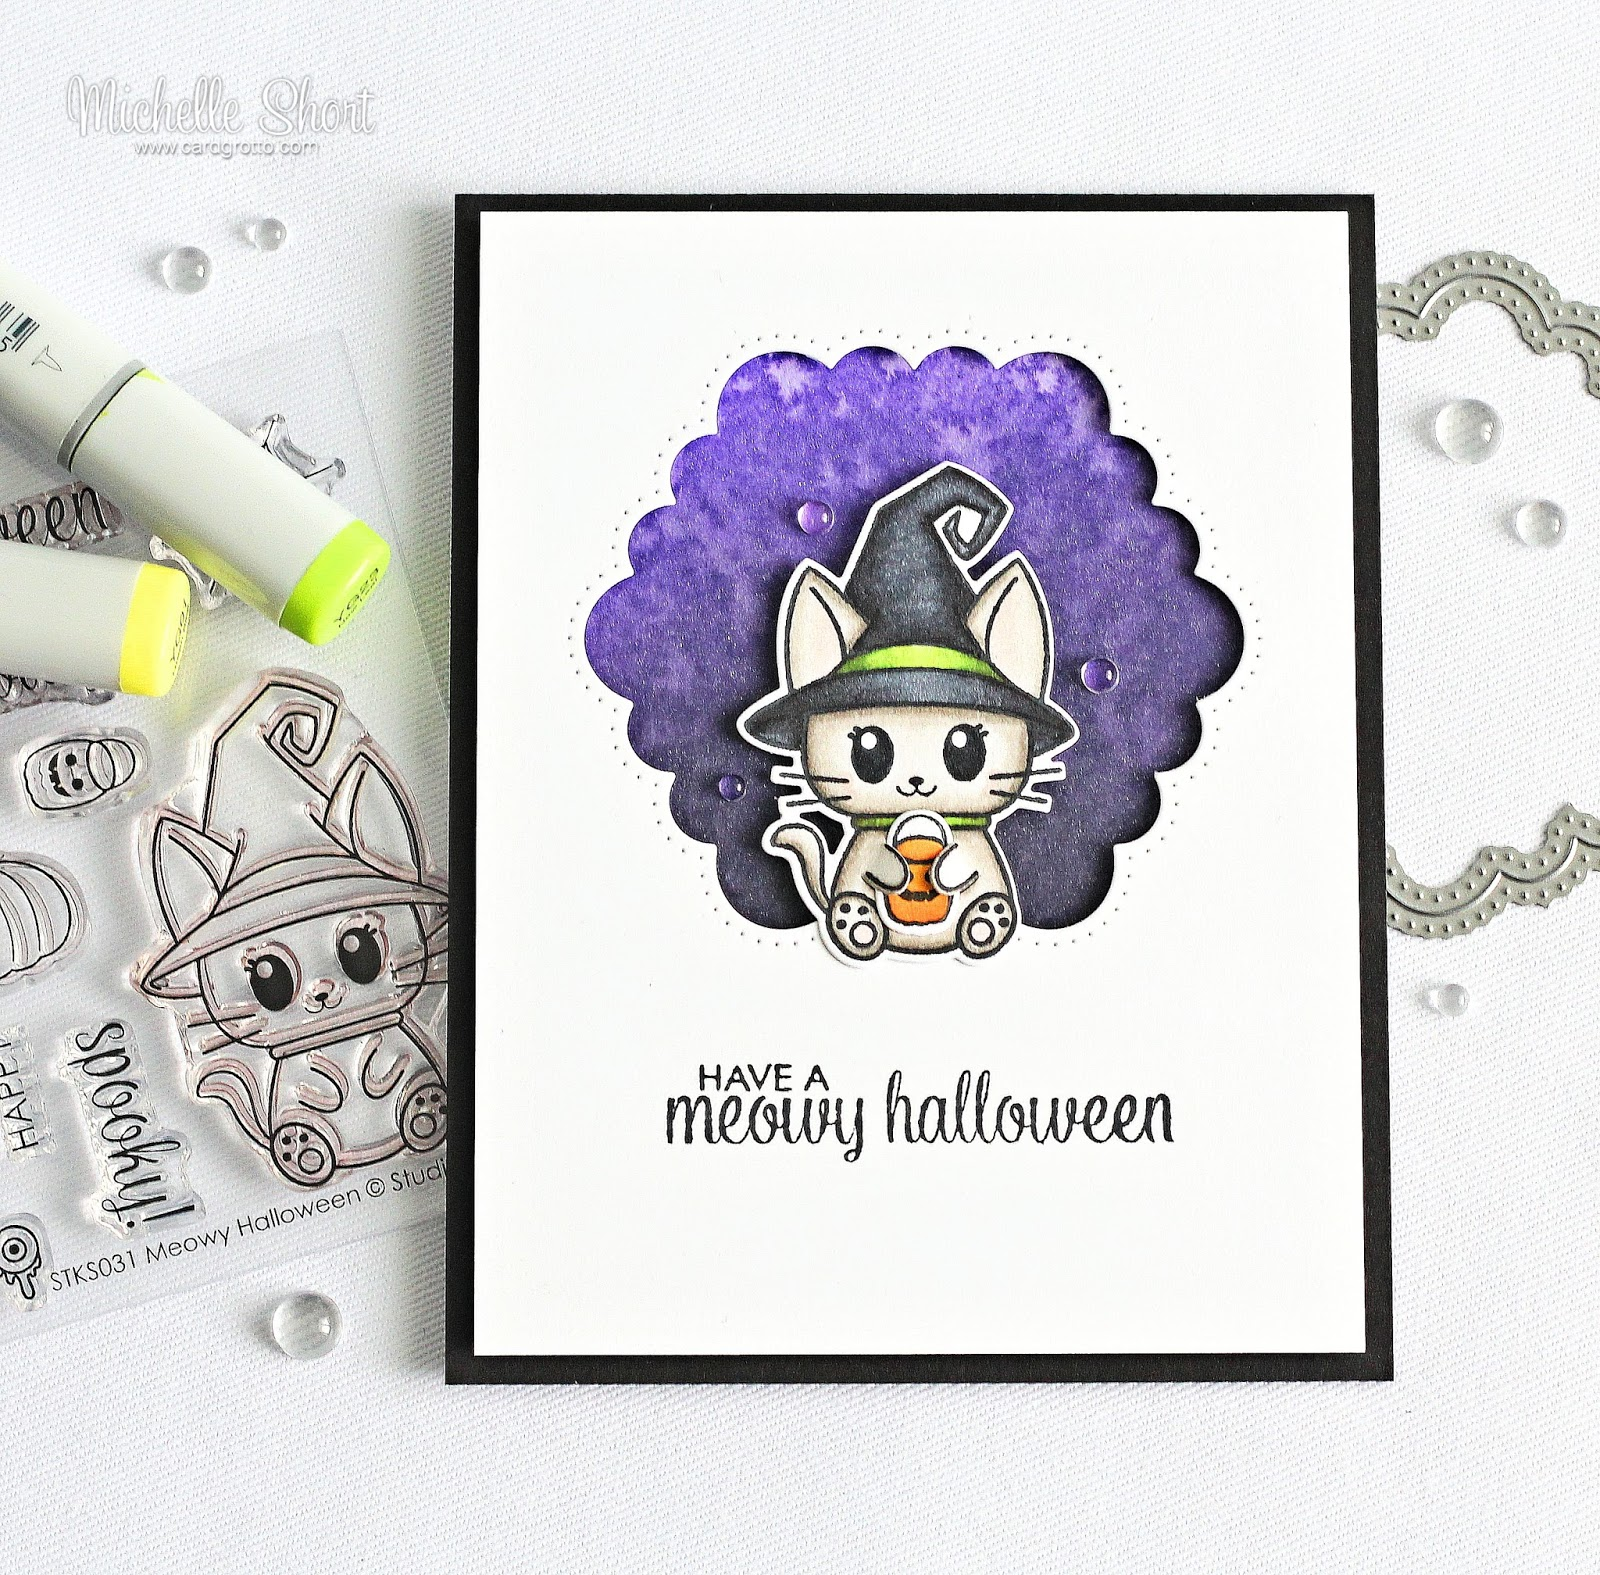 I Started Off By Stamping The Cat And Pumpkin Bucket Bag On To White Cardstock Using Memento Tuxedo Black Ink Coloured Images Copic Markers